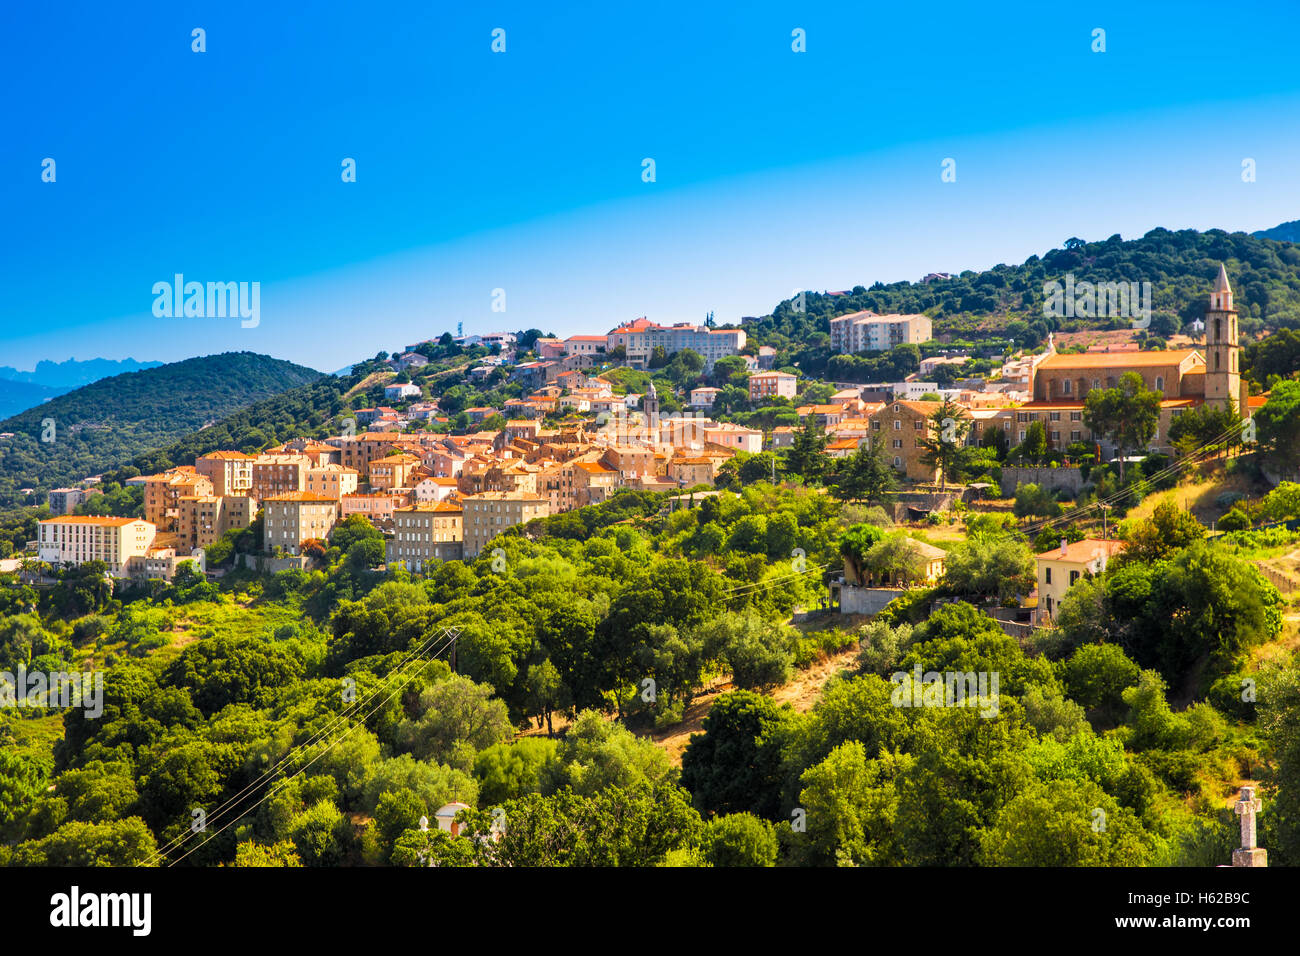 Sartene old town with green forest and mountains, Corsica, France, Europe. - Stock Image